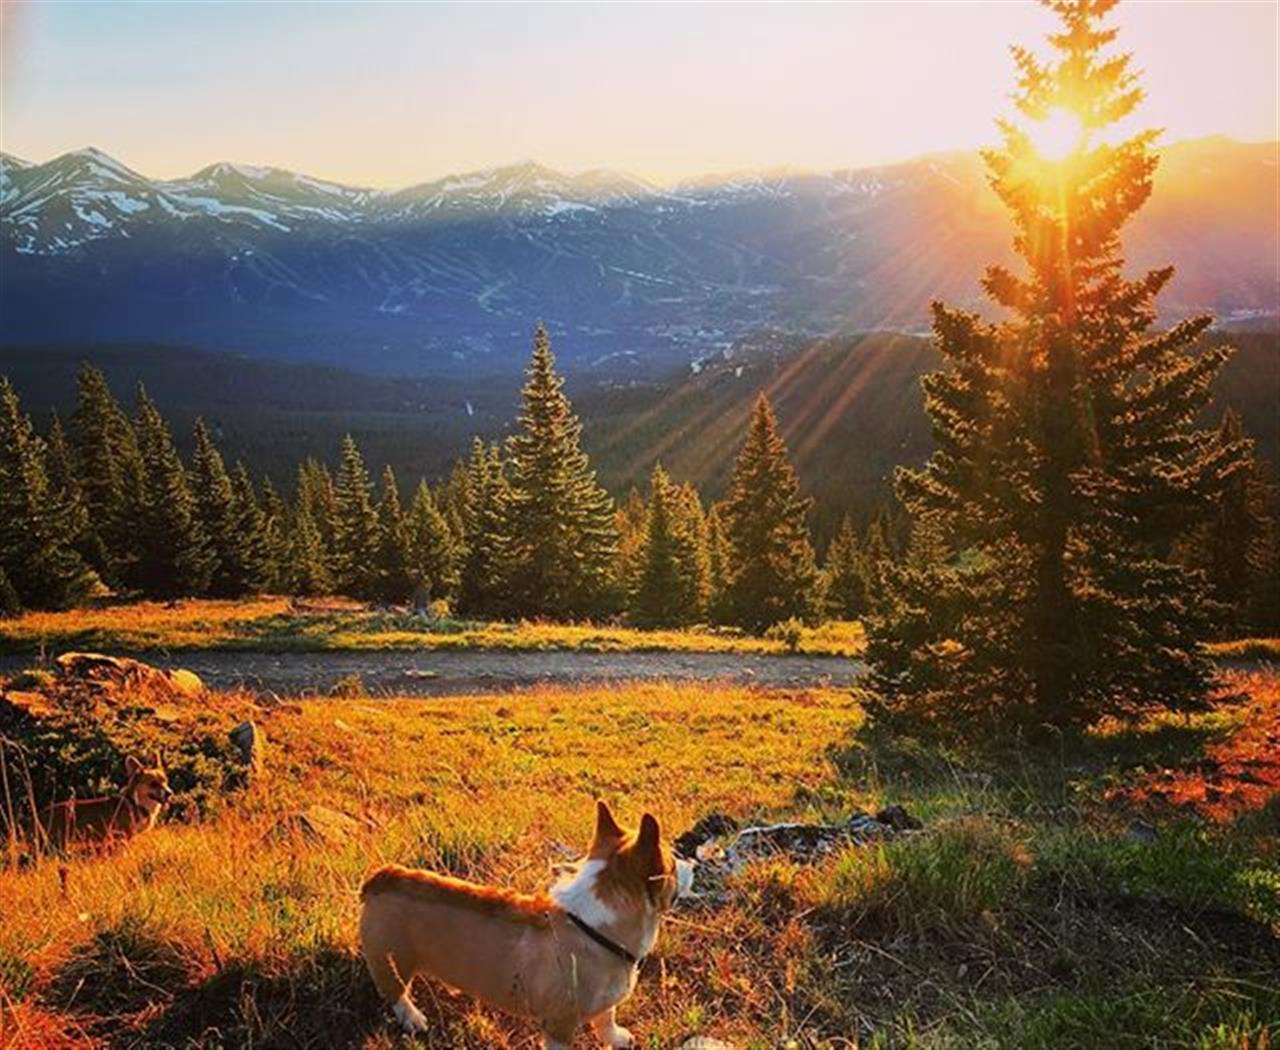 Does it get more majestic? #summersunset #breckenridge #coloradophotography #hardcoreparcorgi #iphoneonly